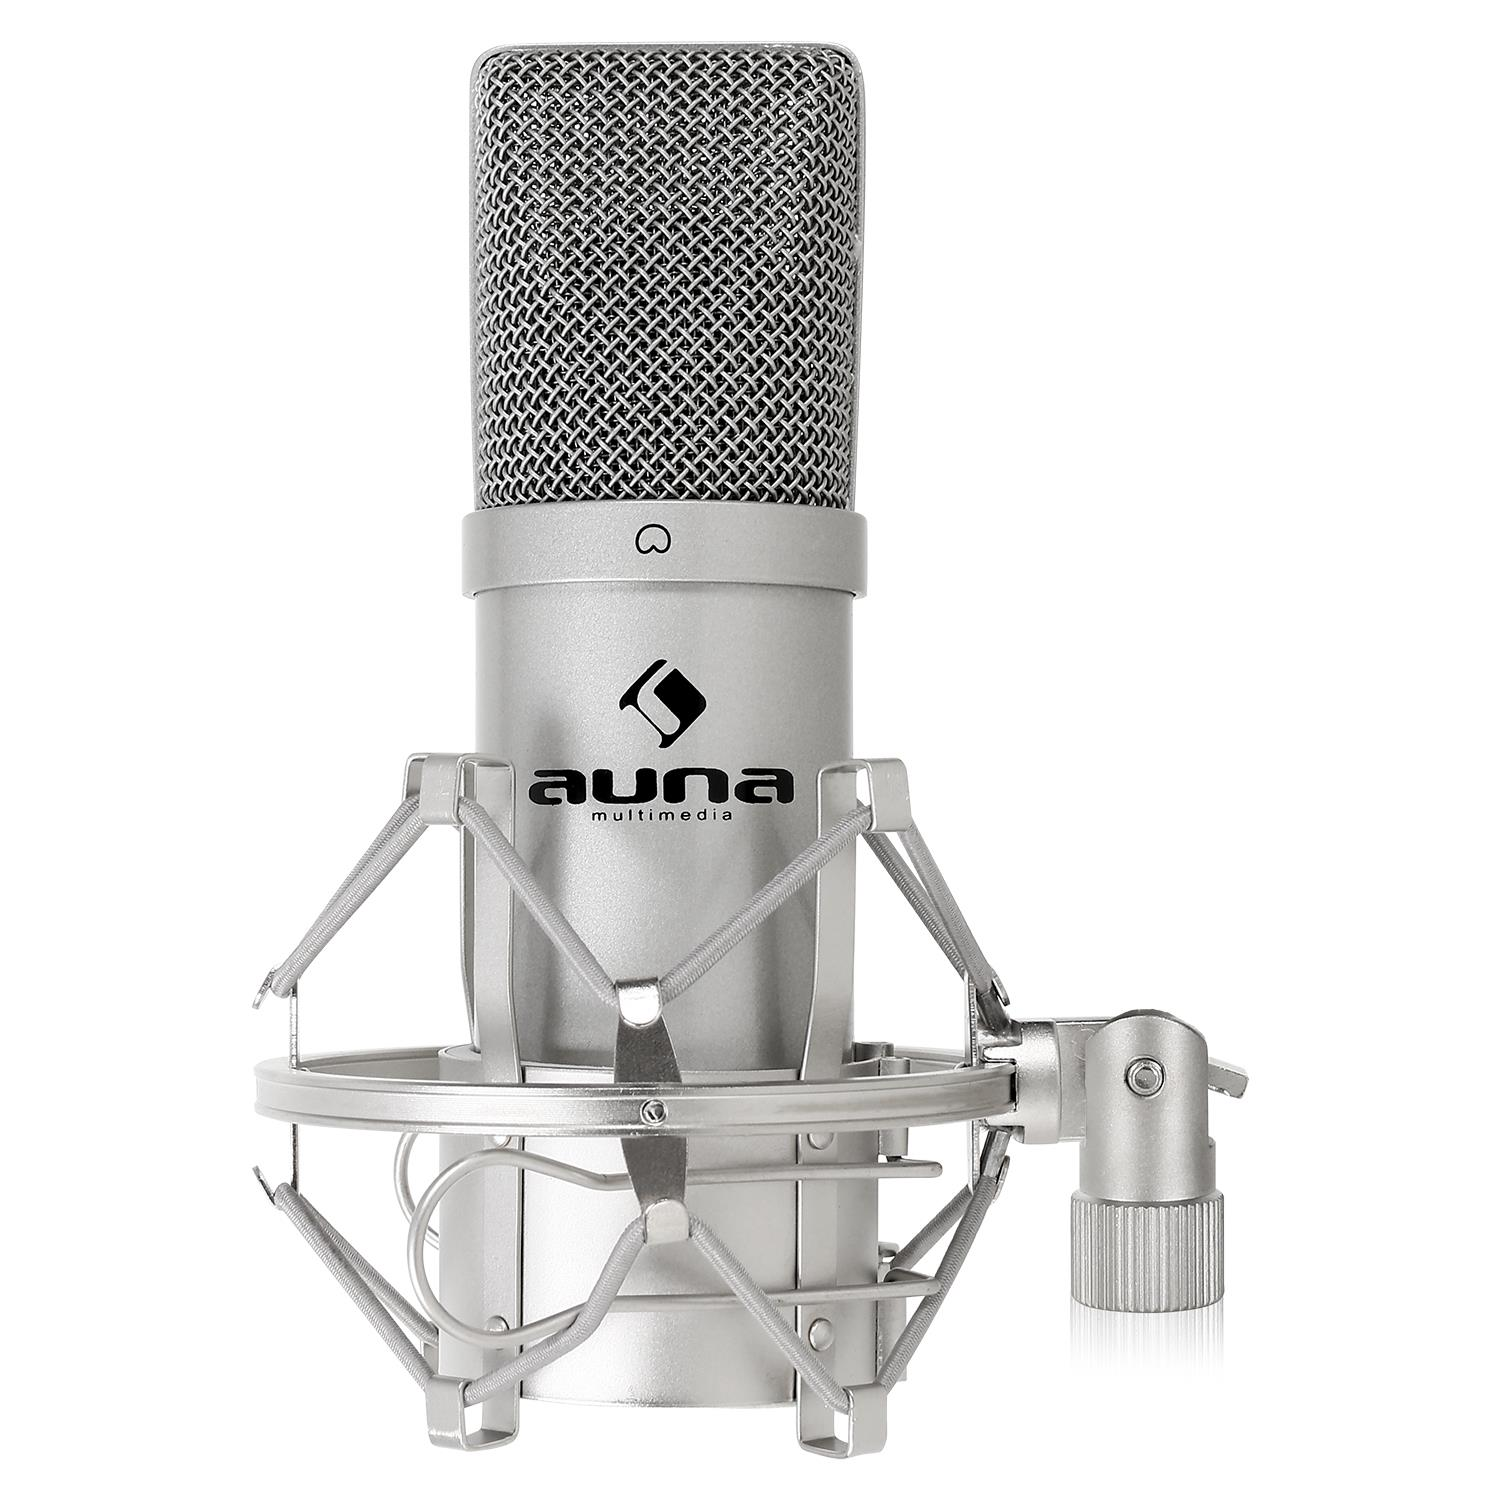 auna mic 900s usb microphone set for studio home voice recording professional ebay. Black Bedroom Furniture Sets. Home Design Ideas